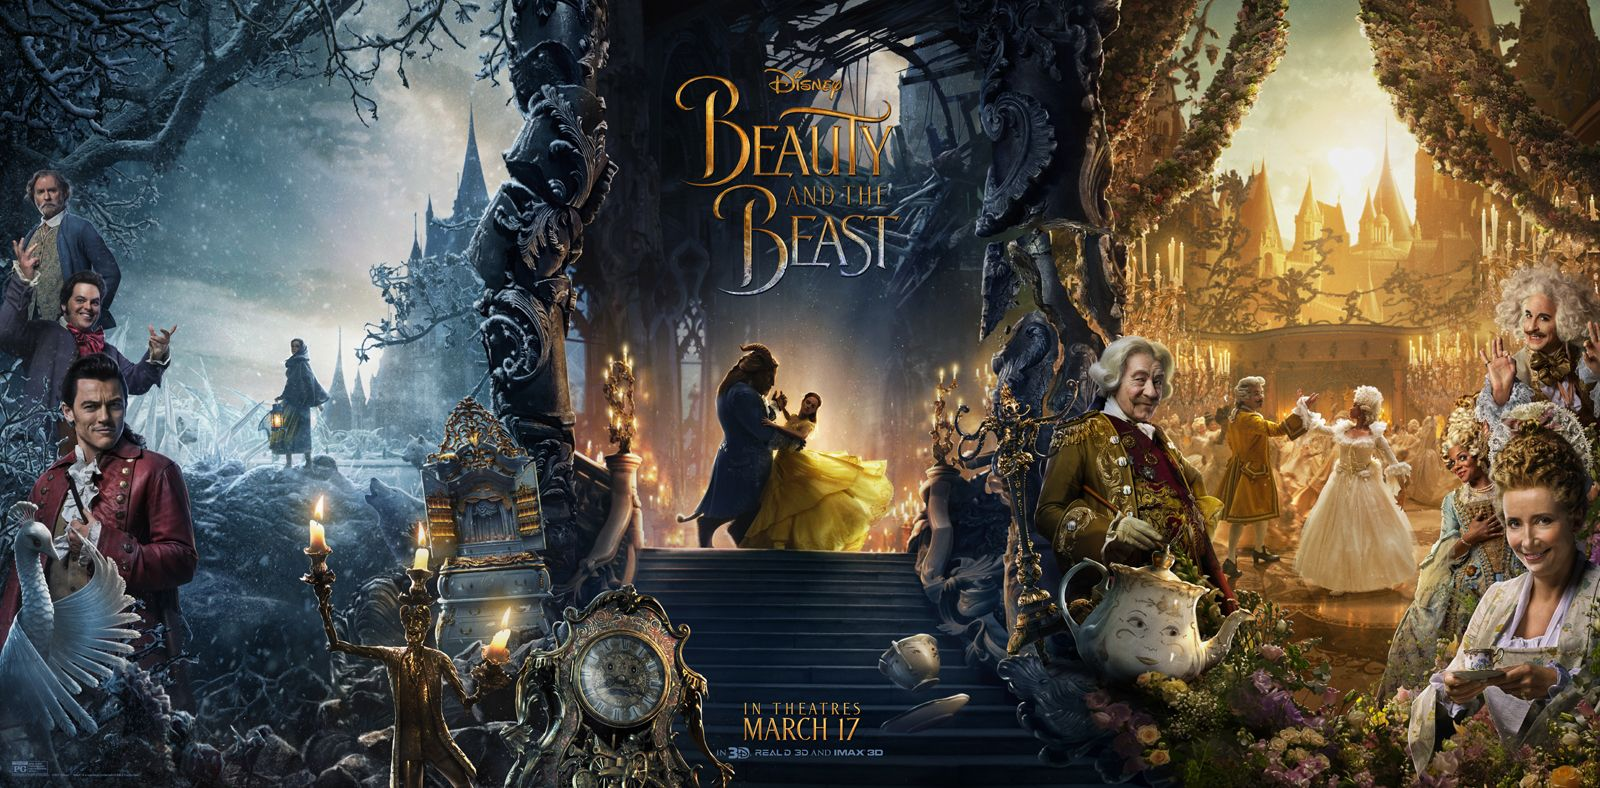 Beauty And The Beast Siap Hadirkan Kembali Celine Dion